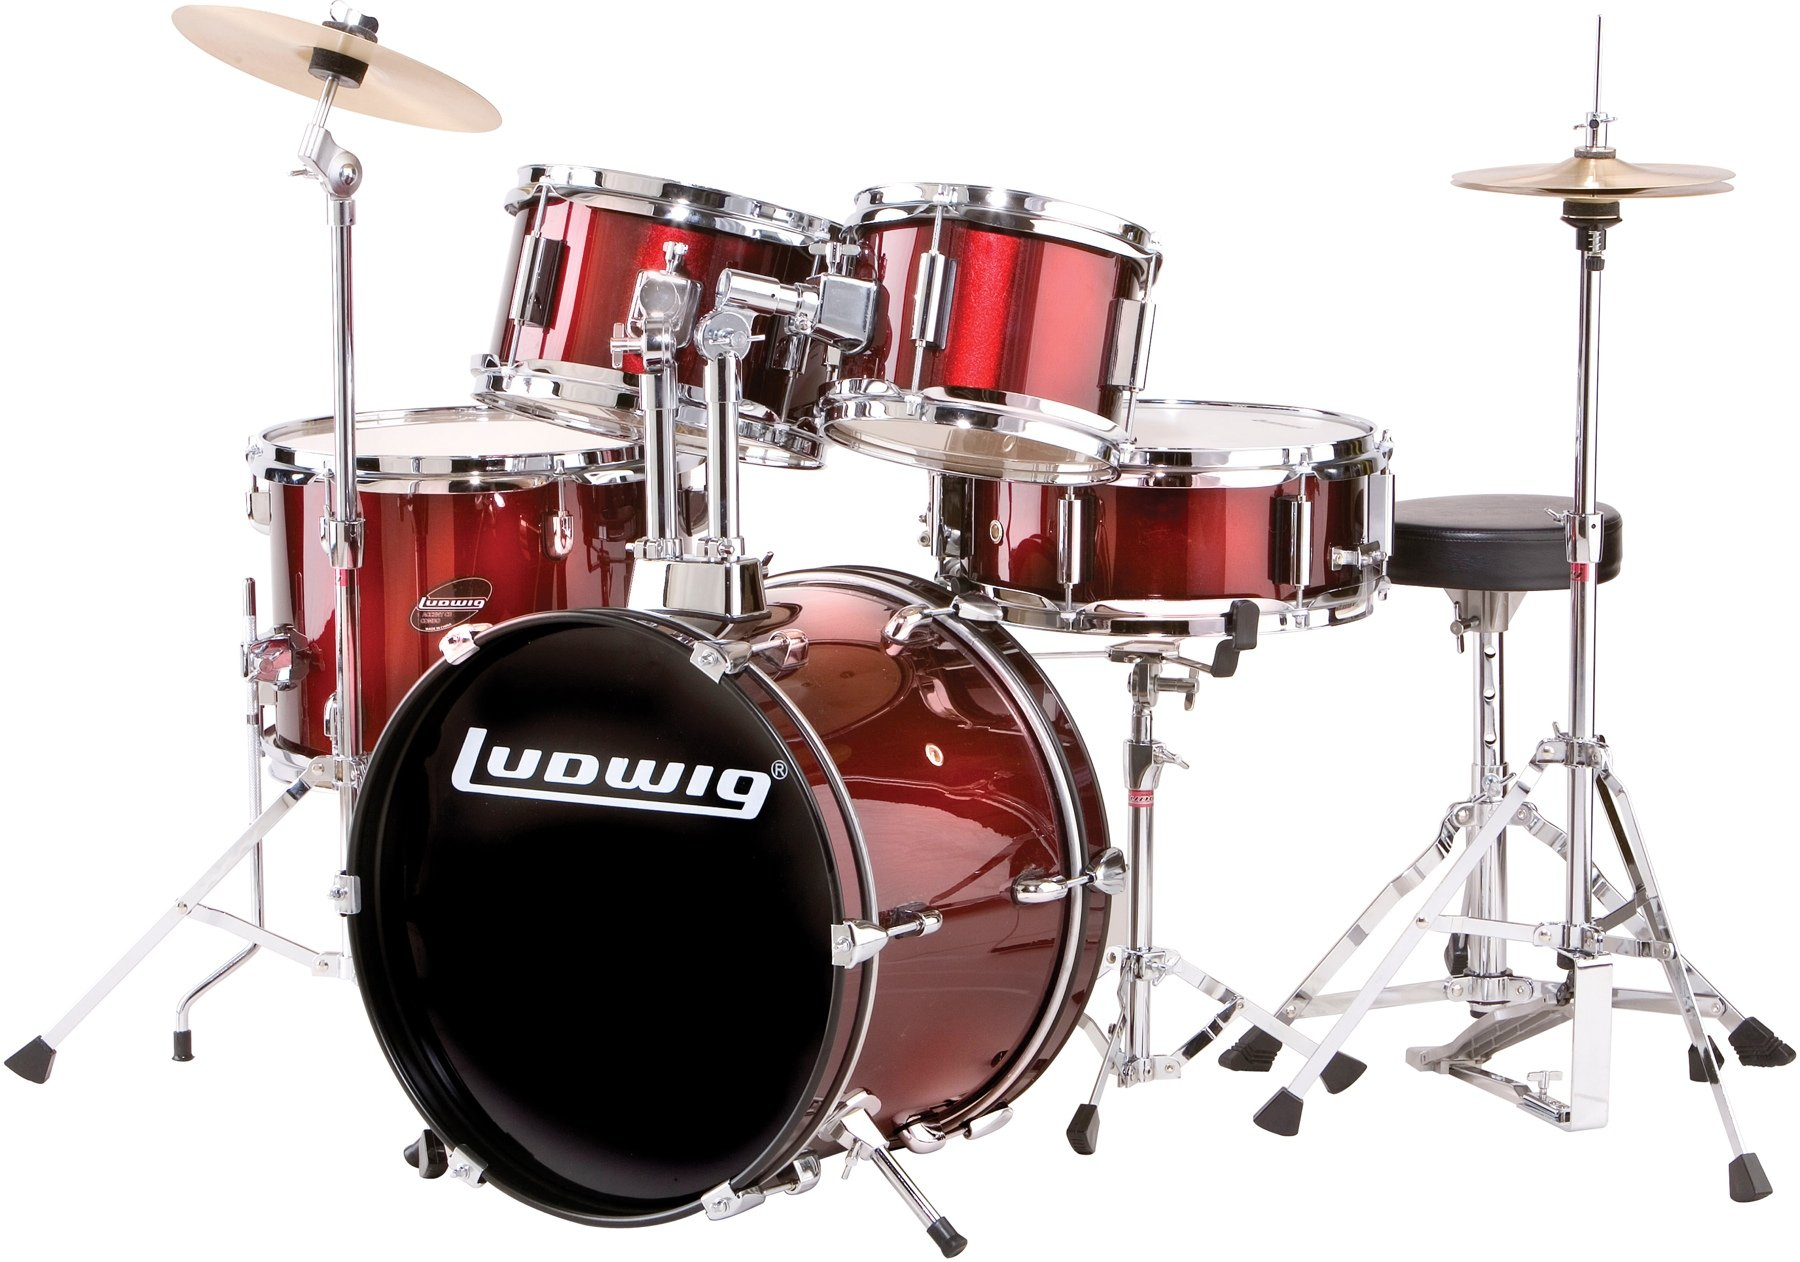 Ludwig 5-piece Junior Drum Set with Cymbals & Hardware - Wine Red image 1